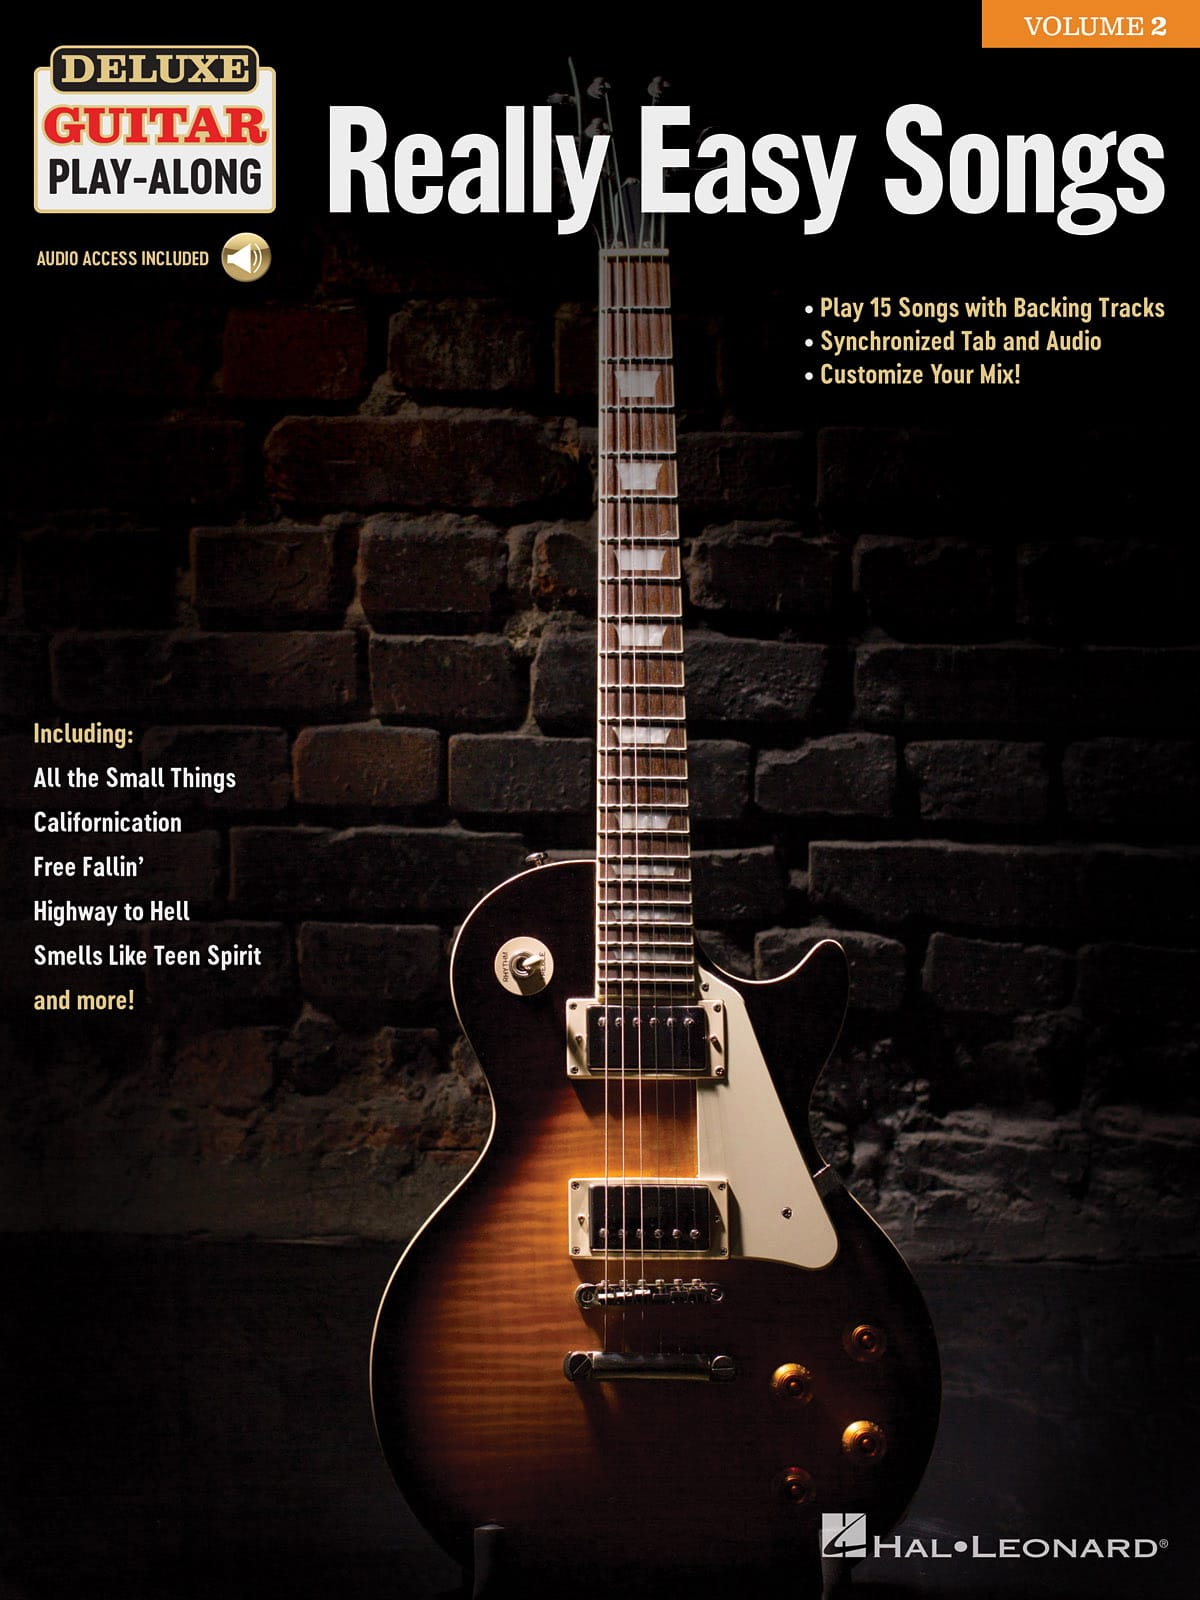 Deluxe Guitar Play-Along Volume 2 - Really Easy Songs - laflutedepan.com